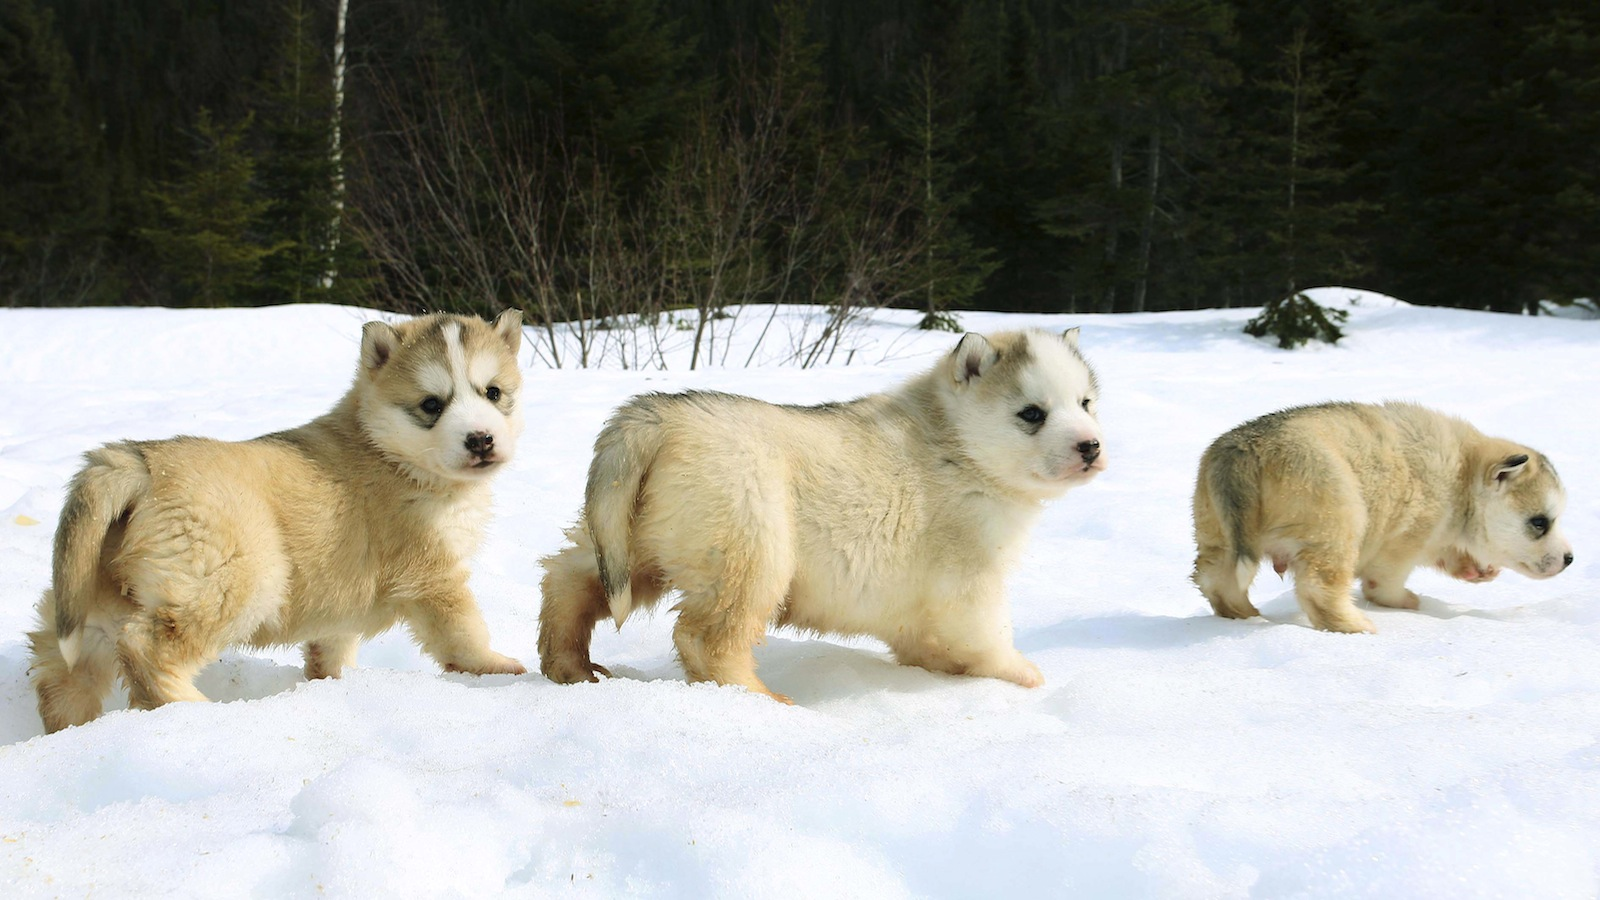 One-month-old Siberian husky sled puppies follow one another in a line during an exercise walk outside of their kennel in Wiltondale, Newfoundland, April 10, 2008. The puppies will be ready to work on the same dog sled team in seven months time.  REUTERS/Paul Darrow (CANADA) - RTR1ZBVP